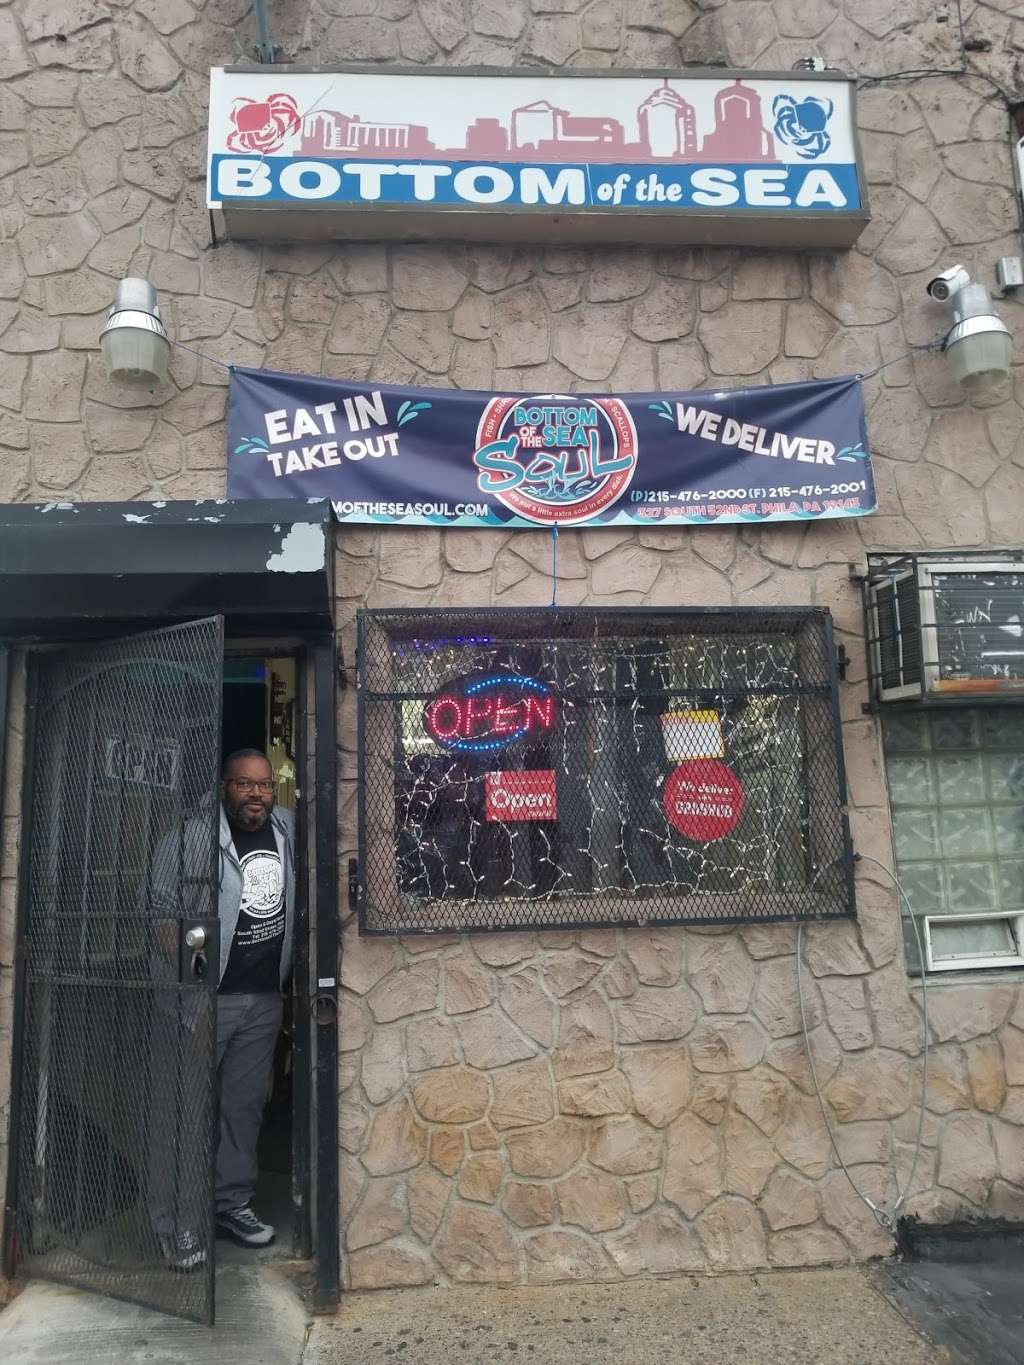 Bottom of the sea on south street